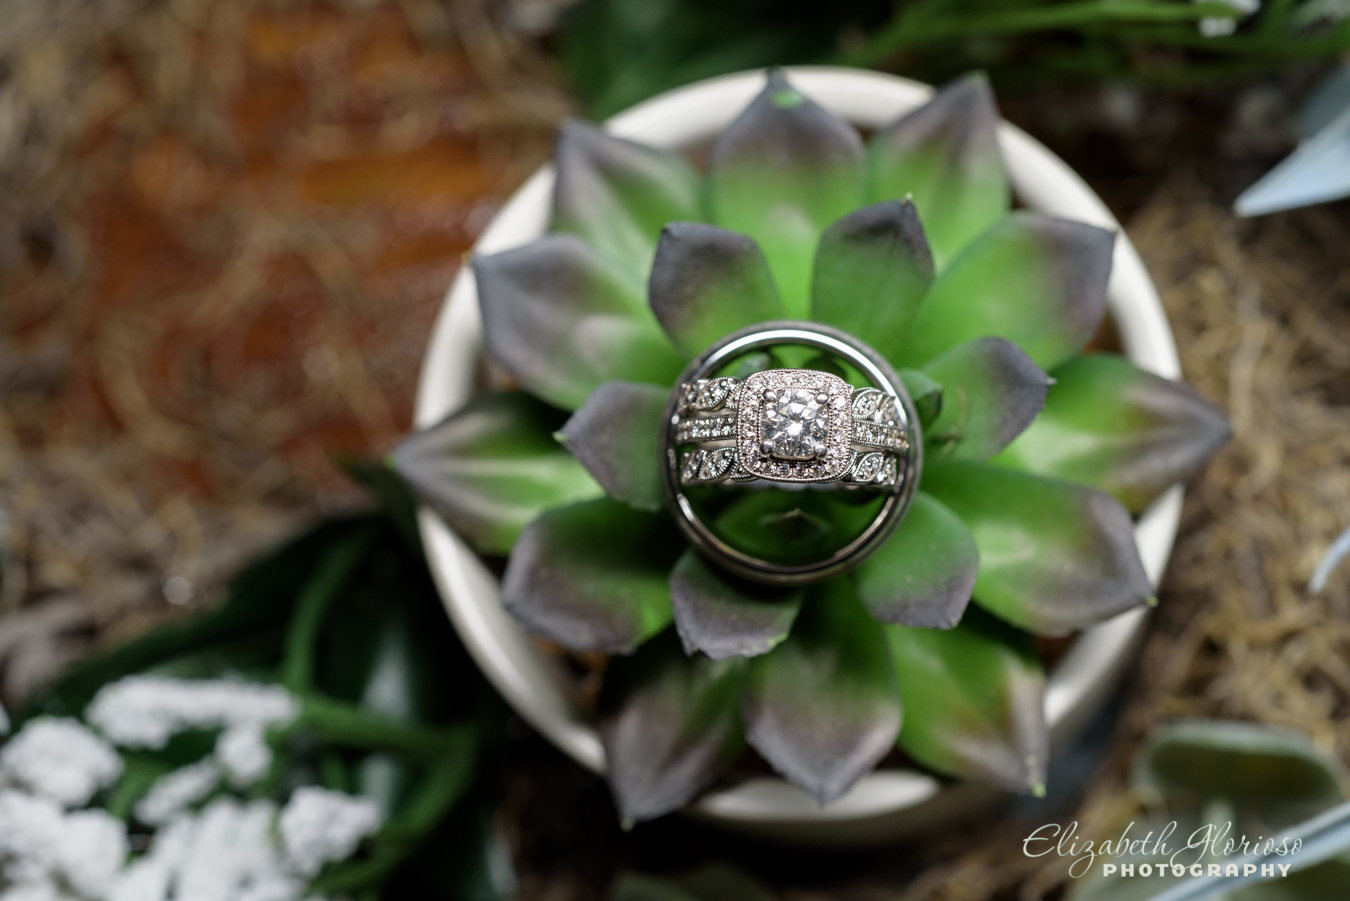 Wedding rings with succulent plant